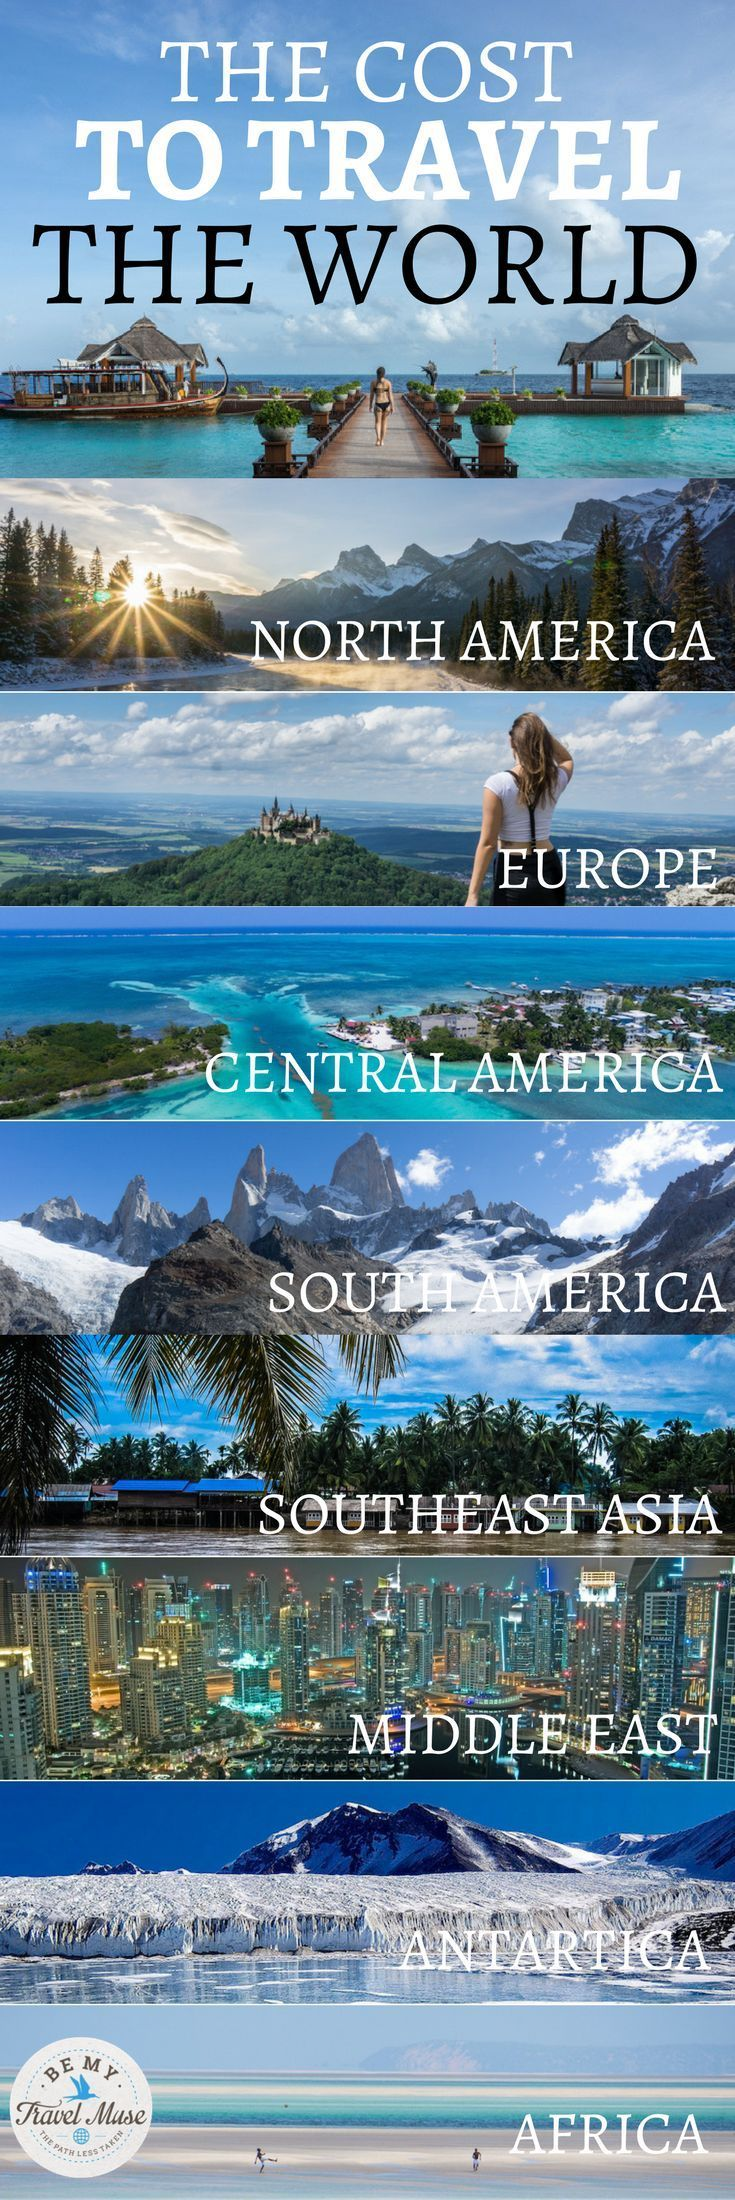 The Cost to Travel Everywhere in the World #aroundtheworldtrips